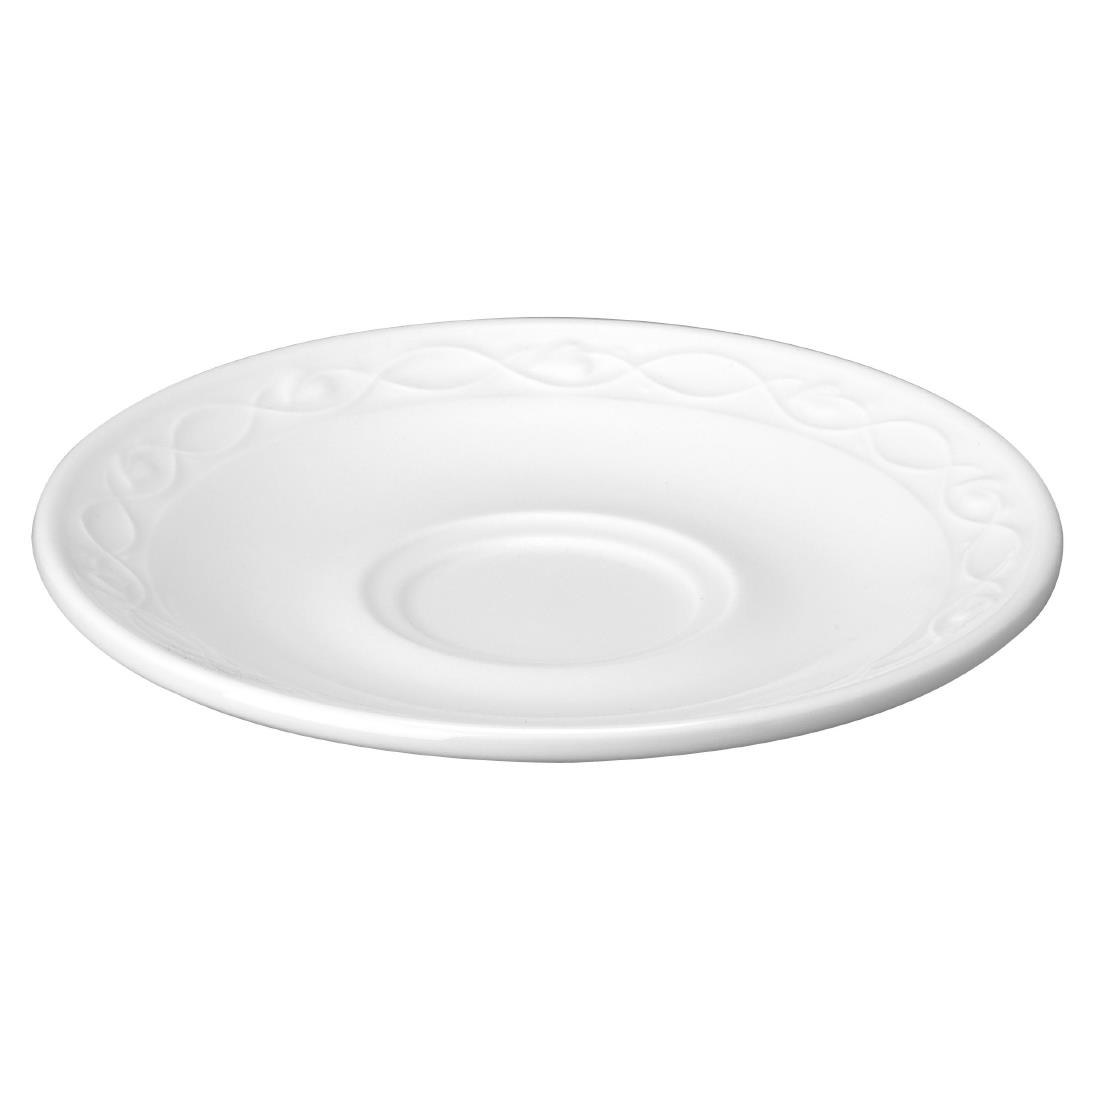 Churchill Chateau Blanc Saucers 137mm (Pack of 24) (M542)